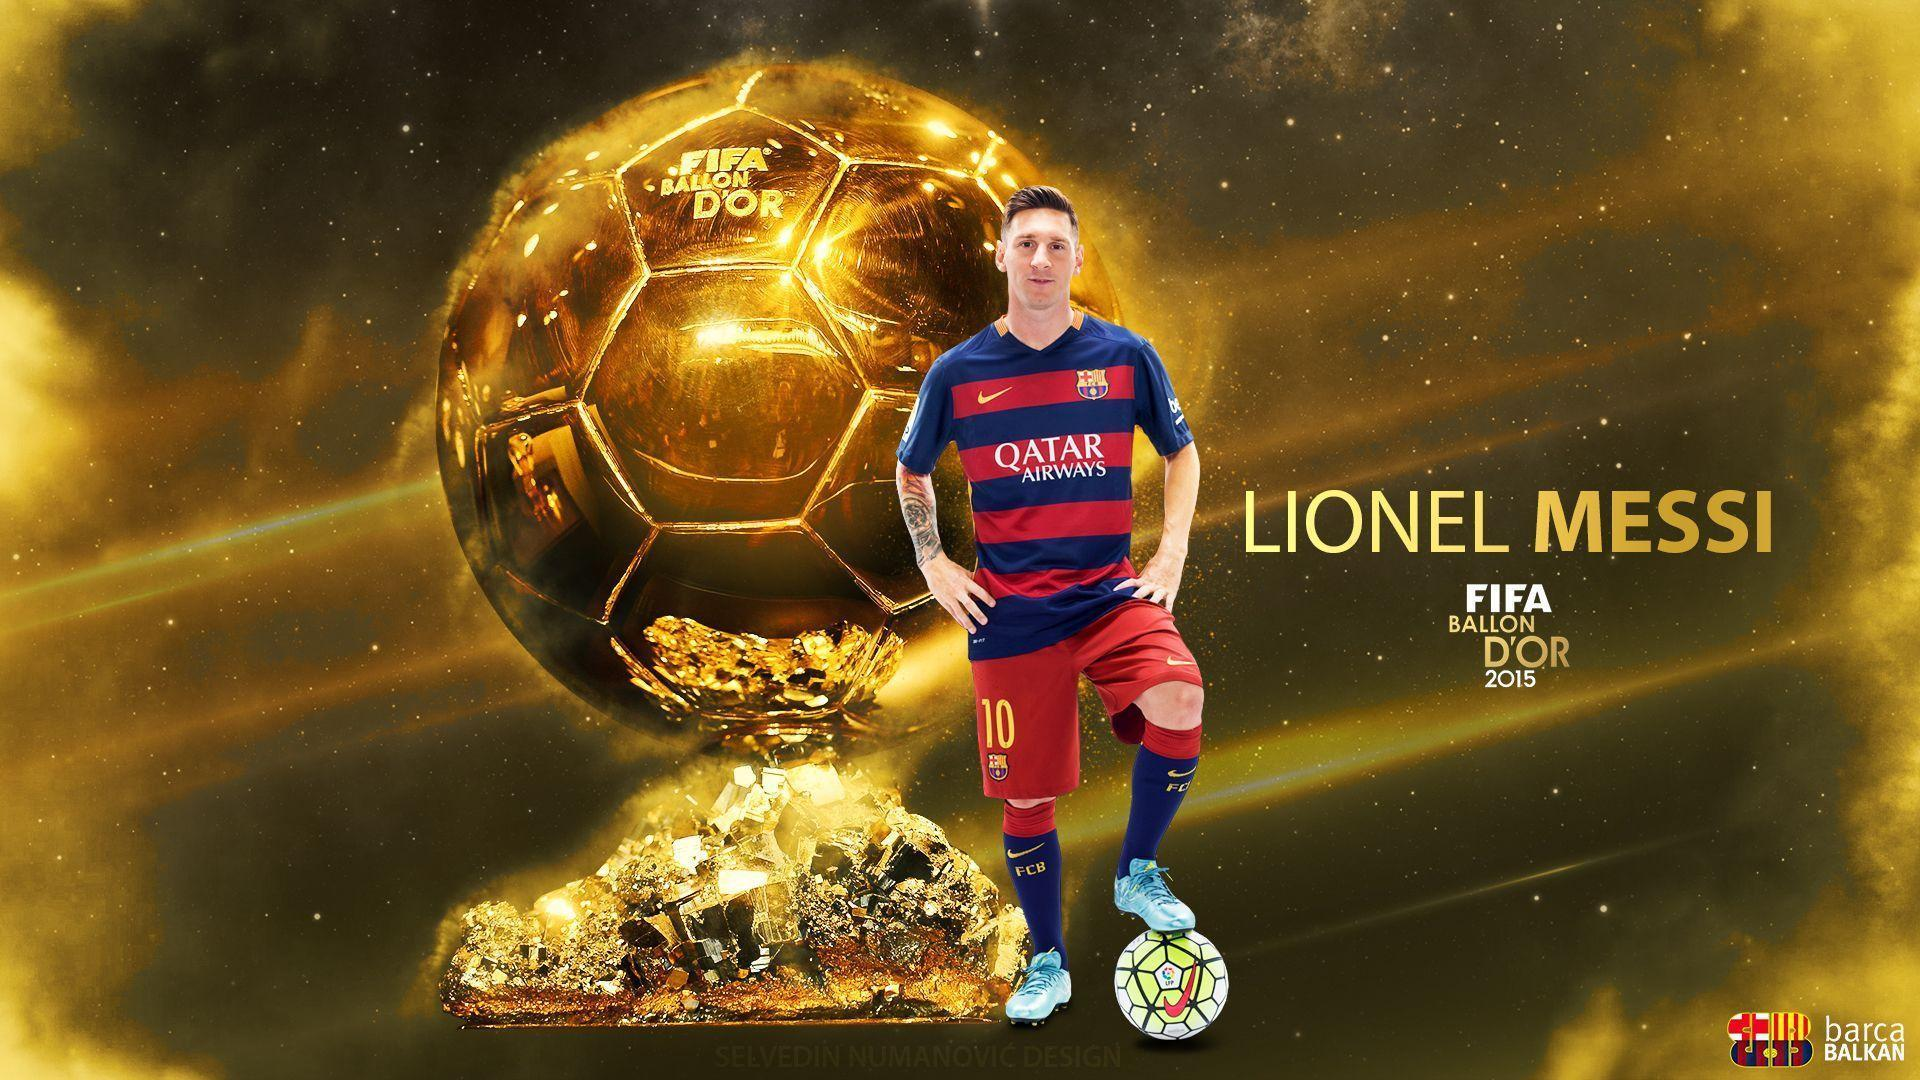 Lionel Messi 2017 Wallpapers HD 1080p 1920x1080